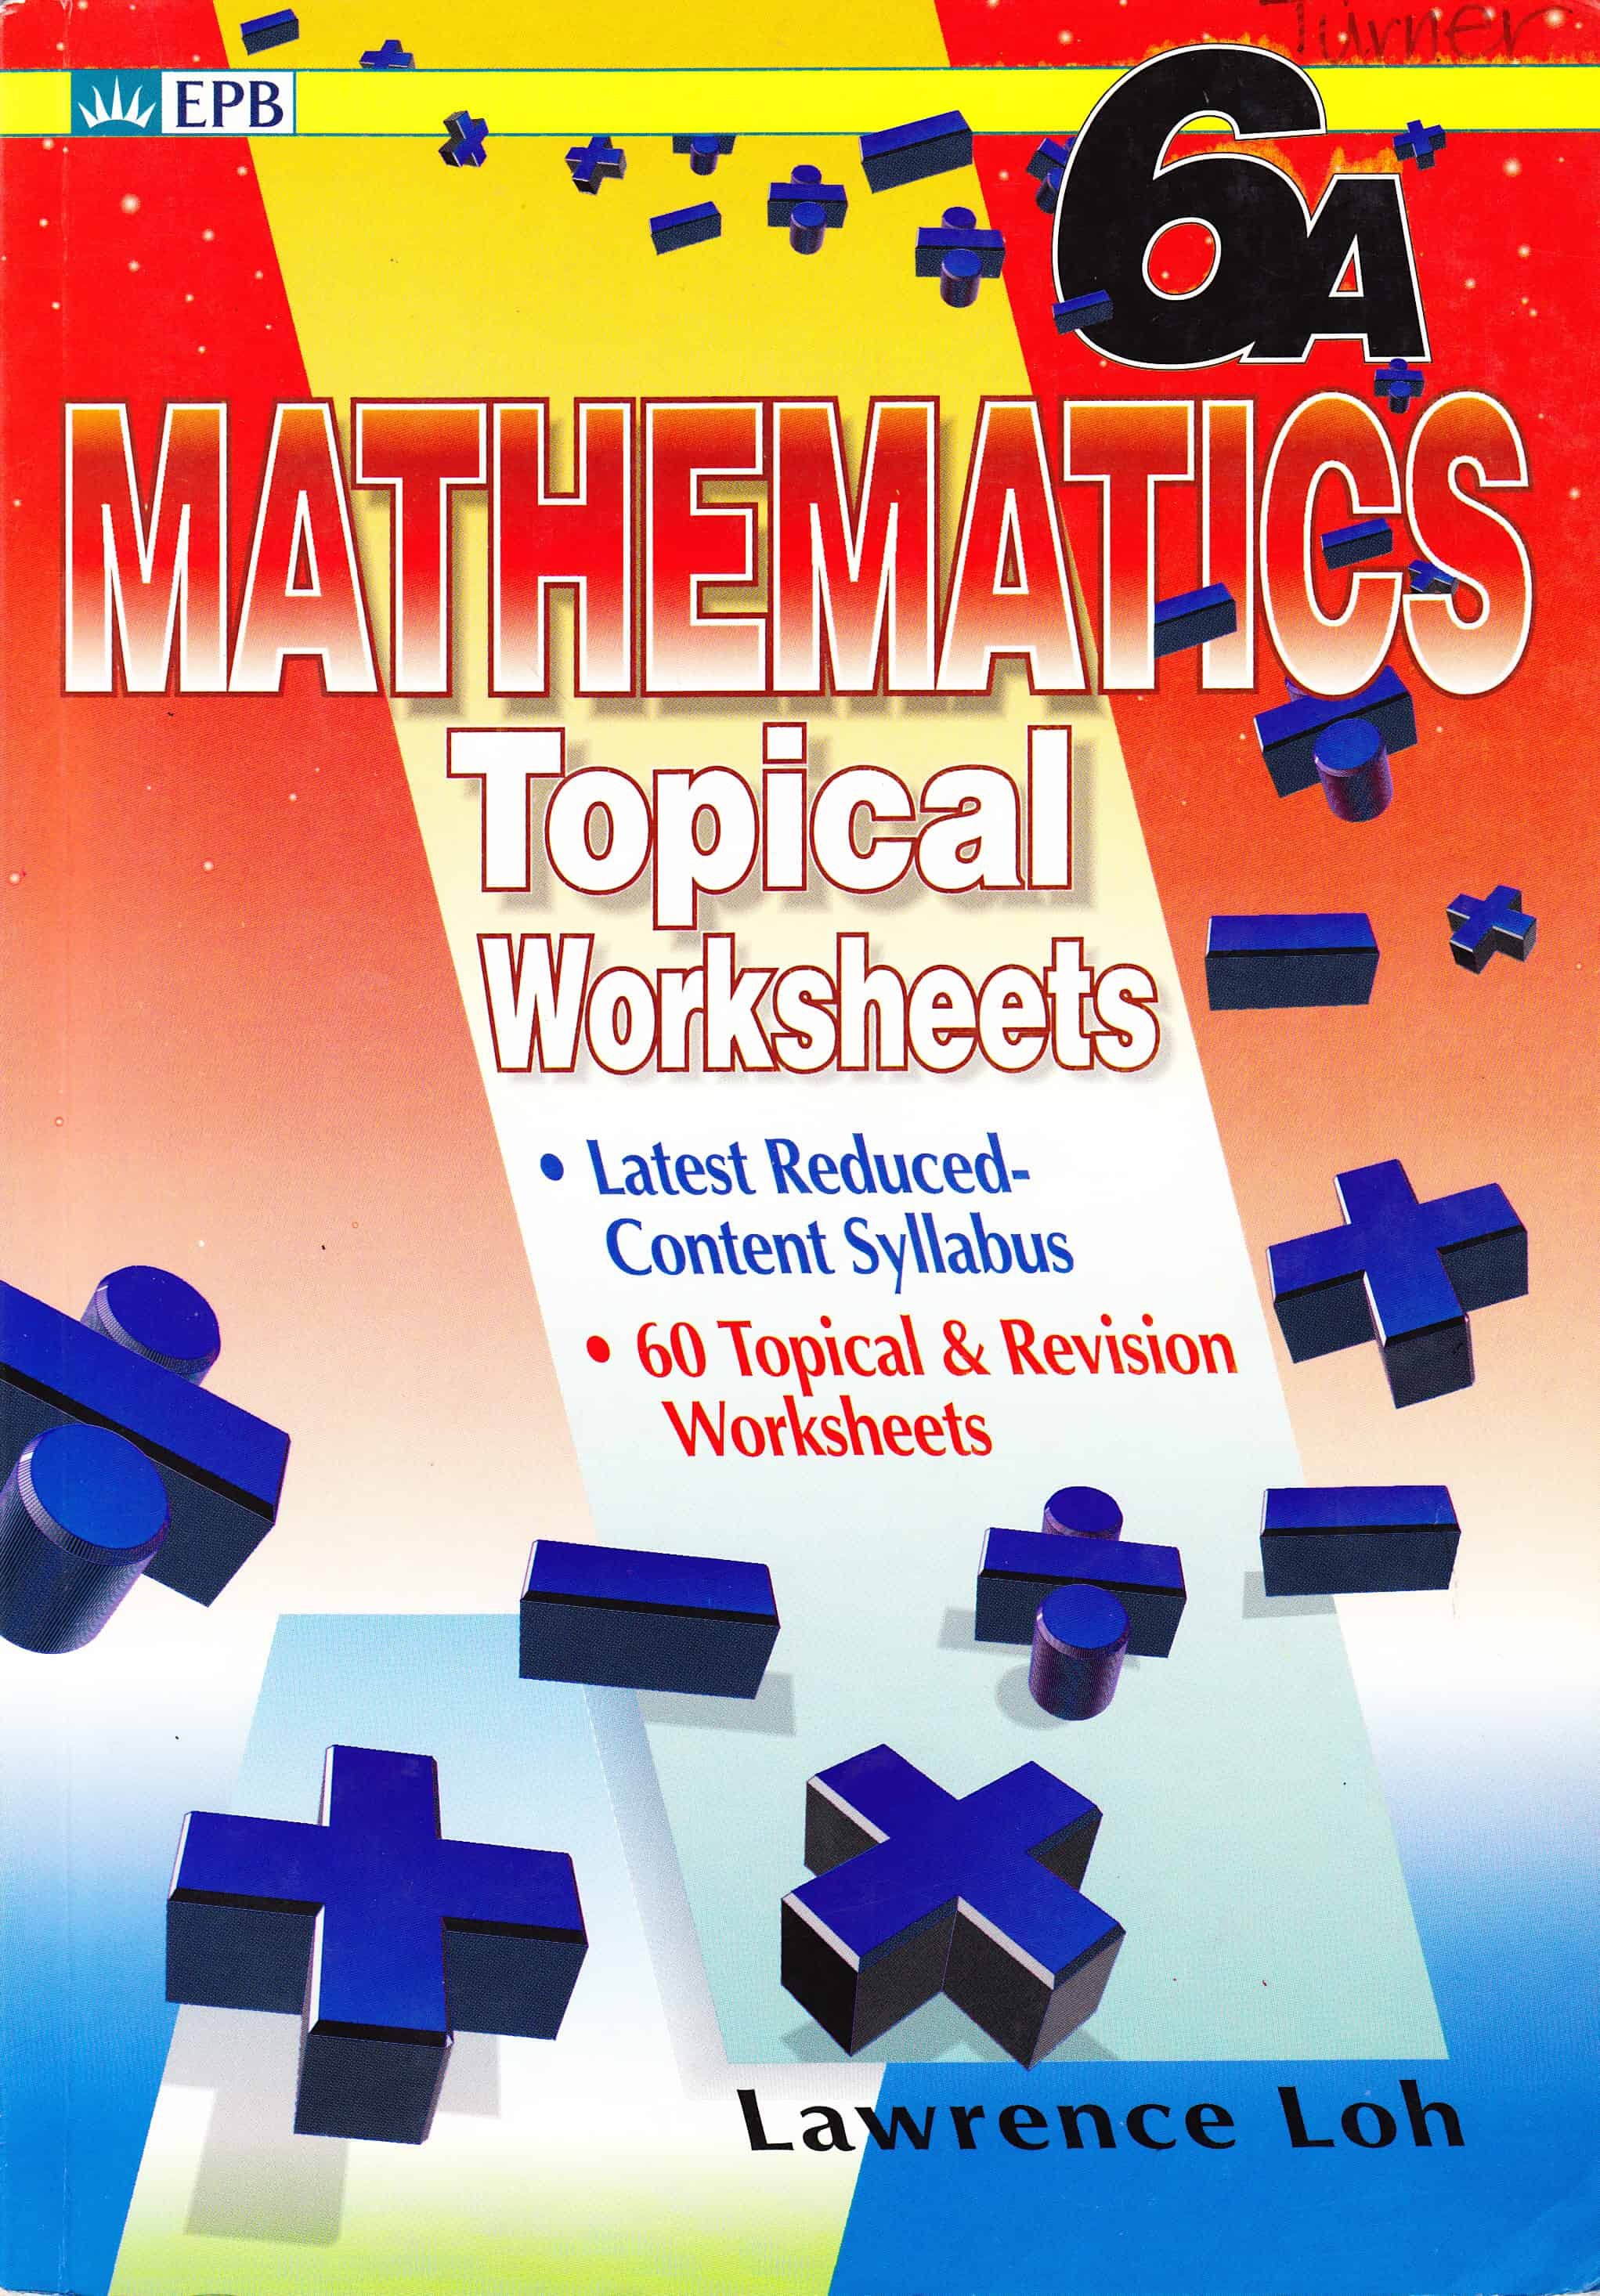 Uncategorized Math Makes Sense 3 Worksheets 100 math makes sense 3 workbook pdf guided groups blog singaporemathsource this week s problem comes from an oldie but goodie mathematics topical wor